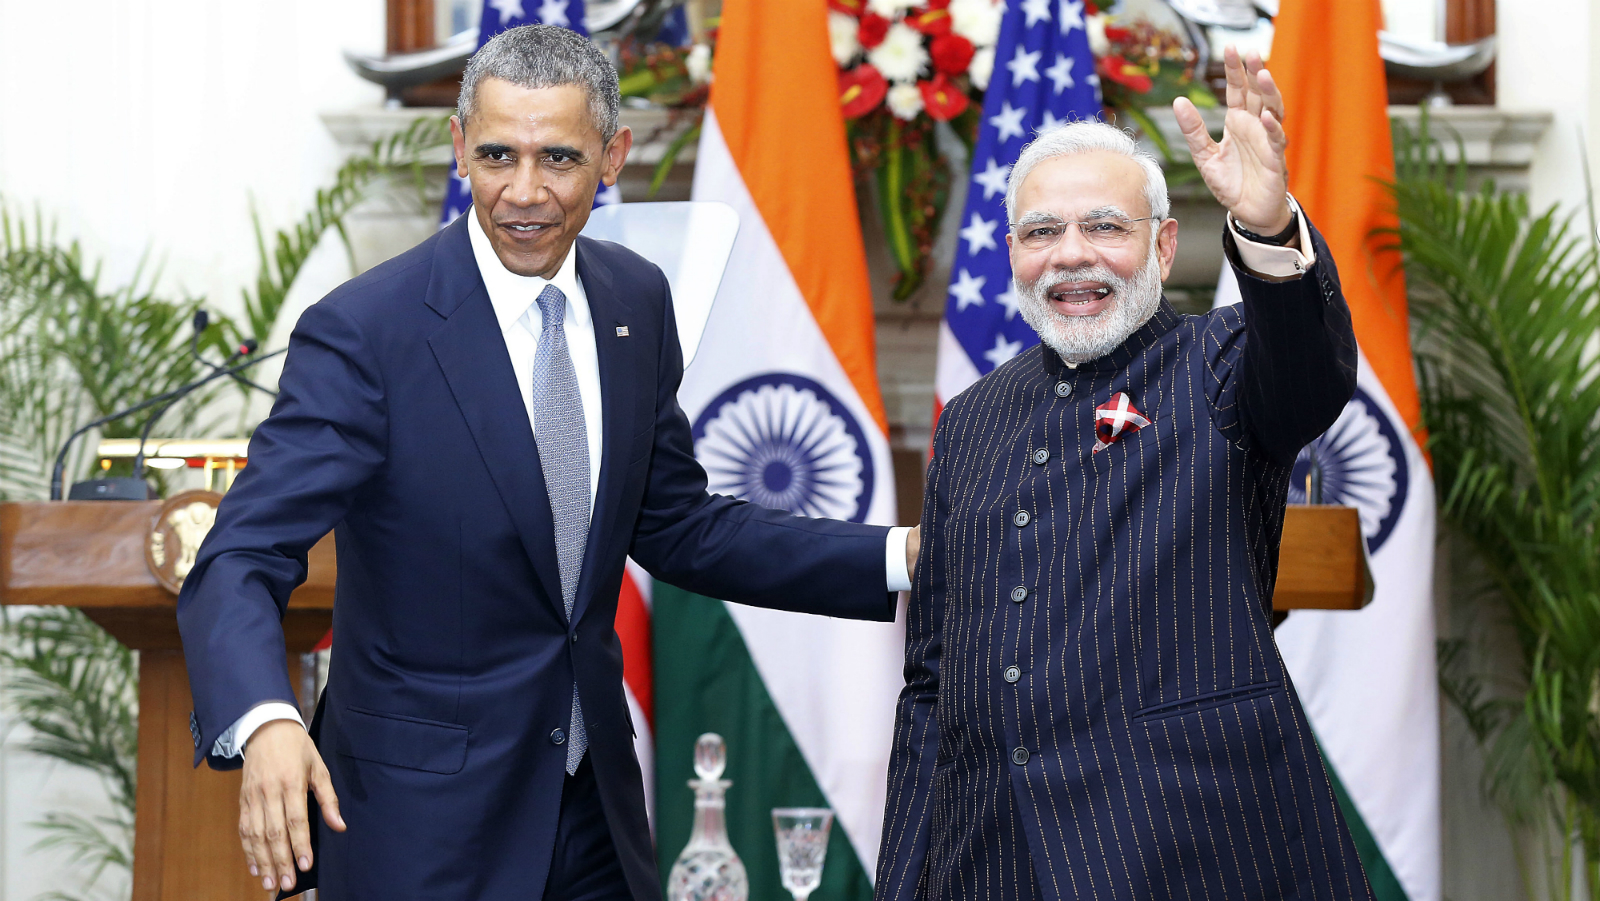 Indian prime minster Narendra Modi (R) and US President Barack Obama after a joint press conference at Hyderabad House in New Delhi, India on 25 January 2015. India and the United States announce a breakthrough in implementing a civil nuclear agreement that has been stalled for six years. The two points of contention are India's nuclear liability law, which has prevented US companies from doing business, and US insistence on tracking fissile material supplied to India.Modi and Obama also say their countries agreed to collaborate on advanced defence projects.